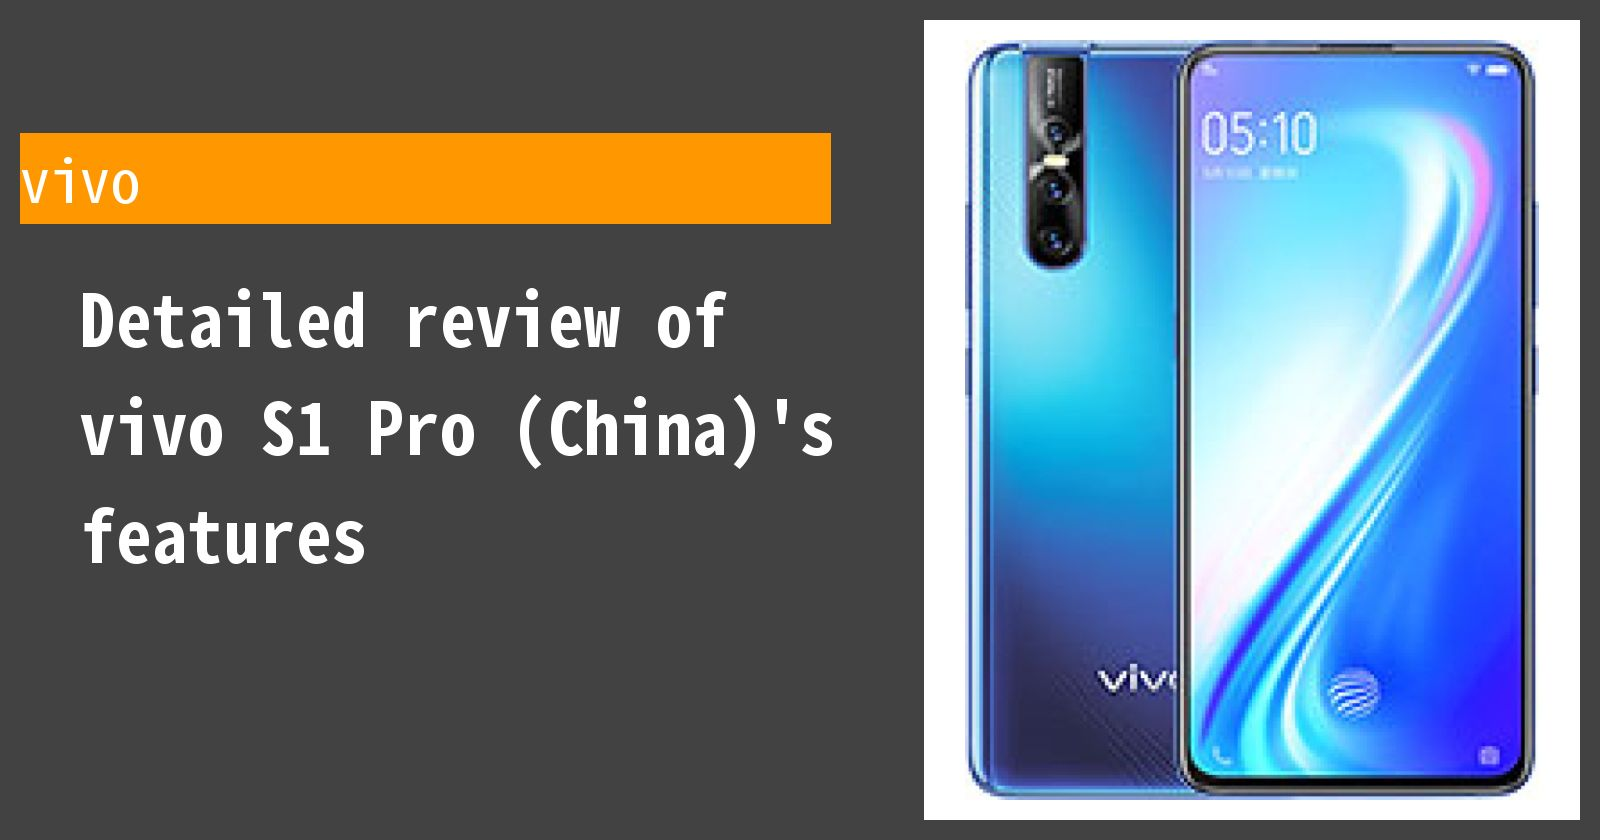 Detailed review of vivo S1 Pro (China)'s features